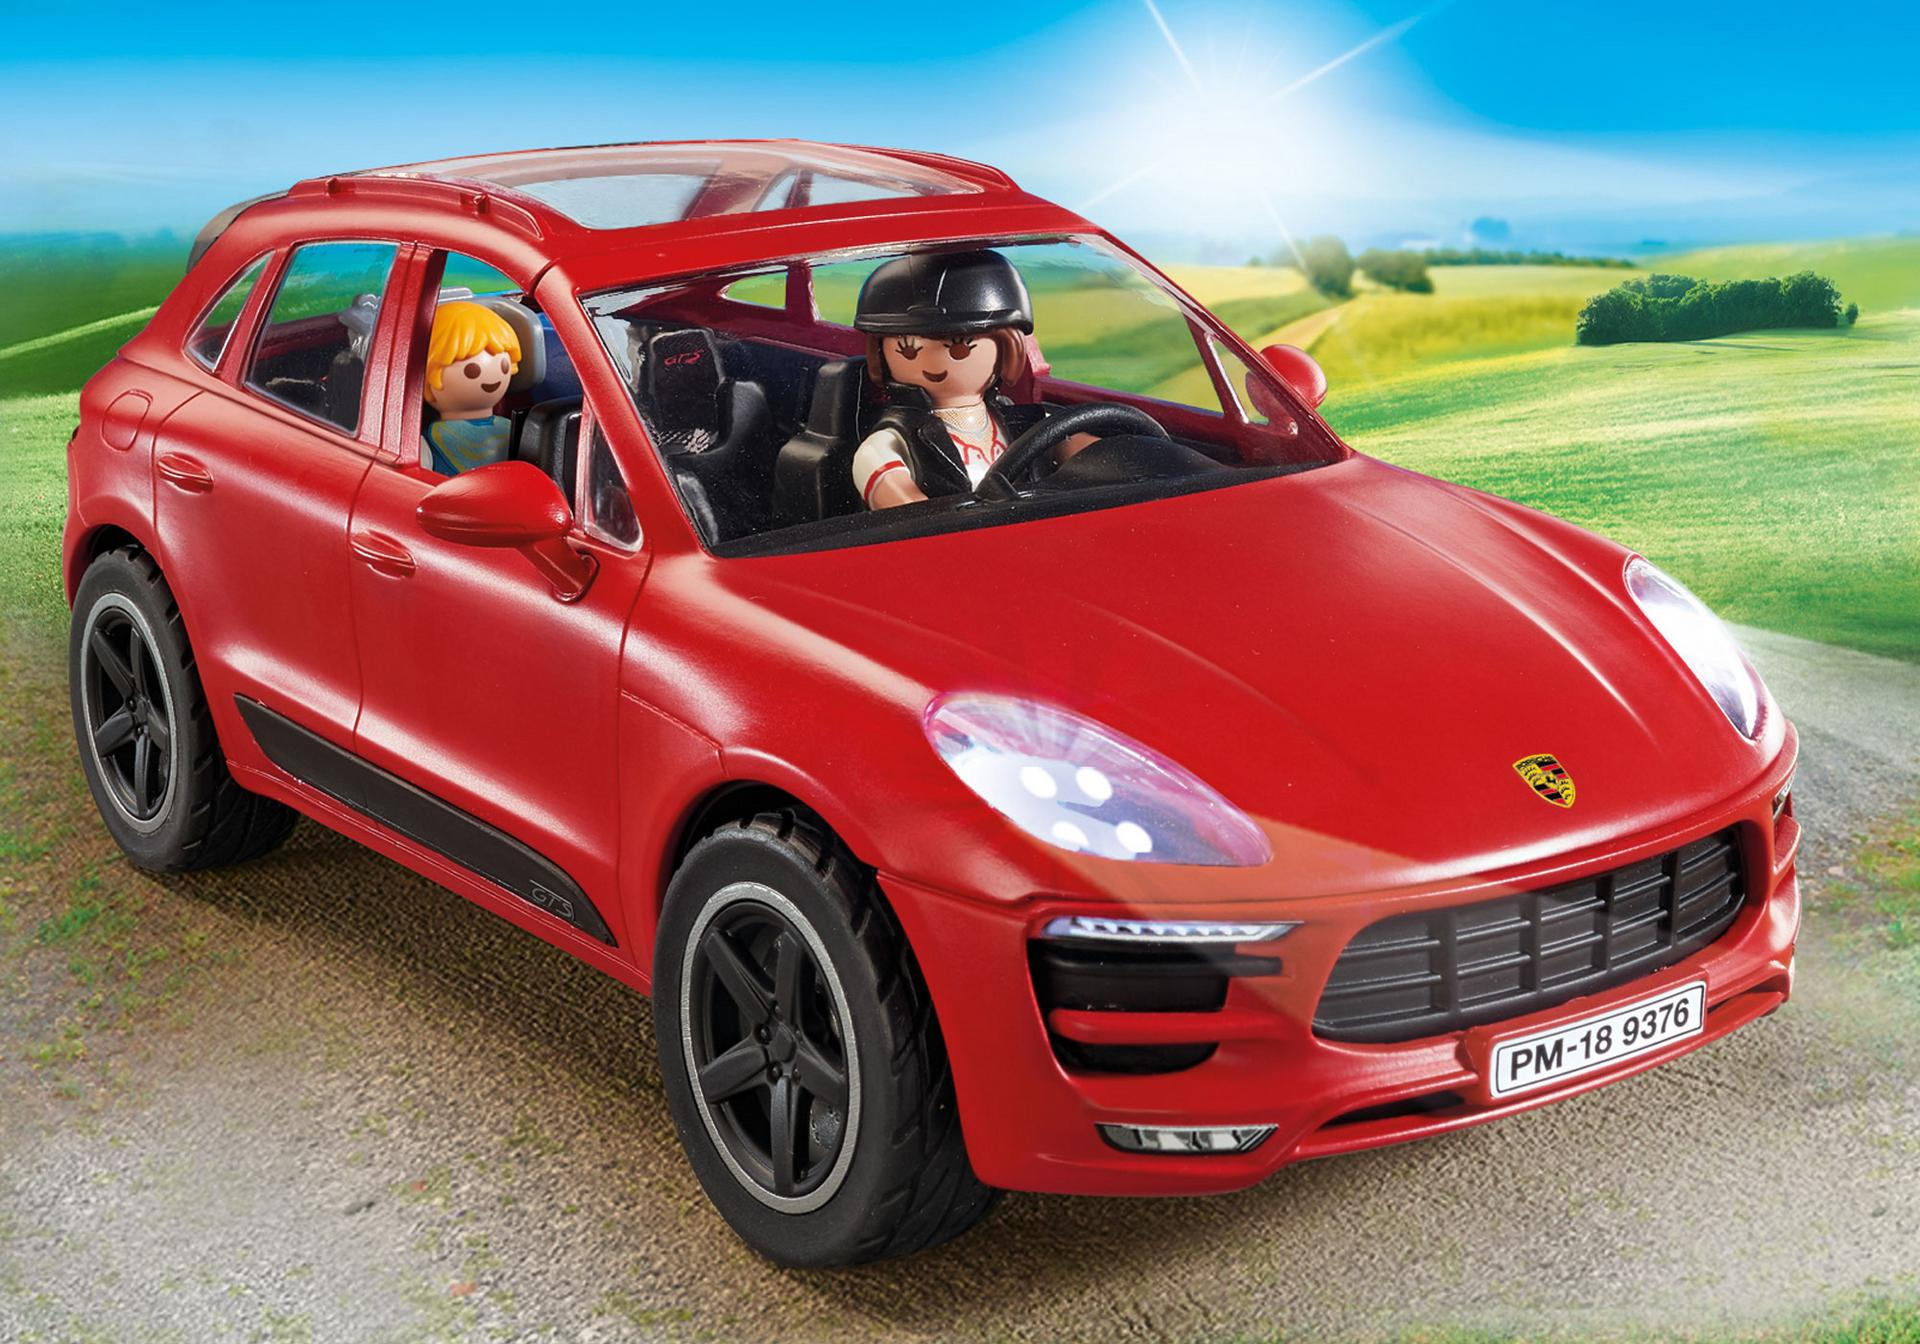 porsche macan gts 9376 playmobil deutschland. Black Bedroom Furniture Sets. Home Design Ideas